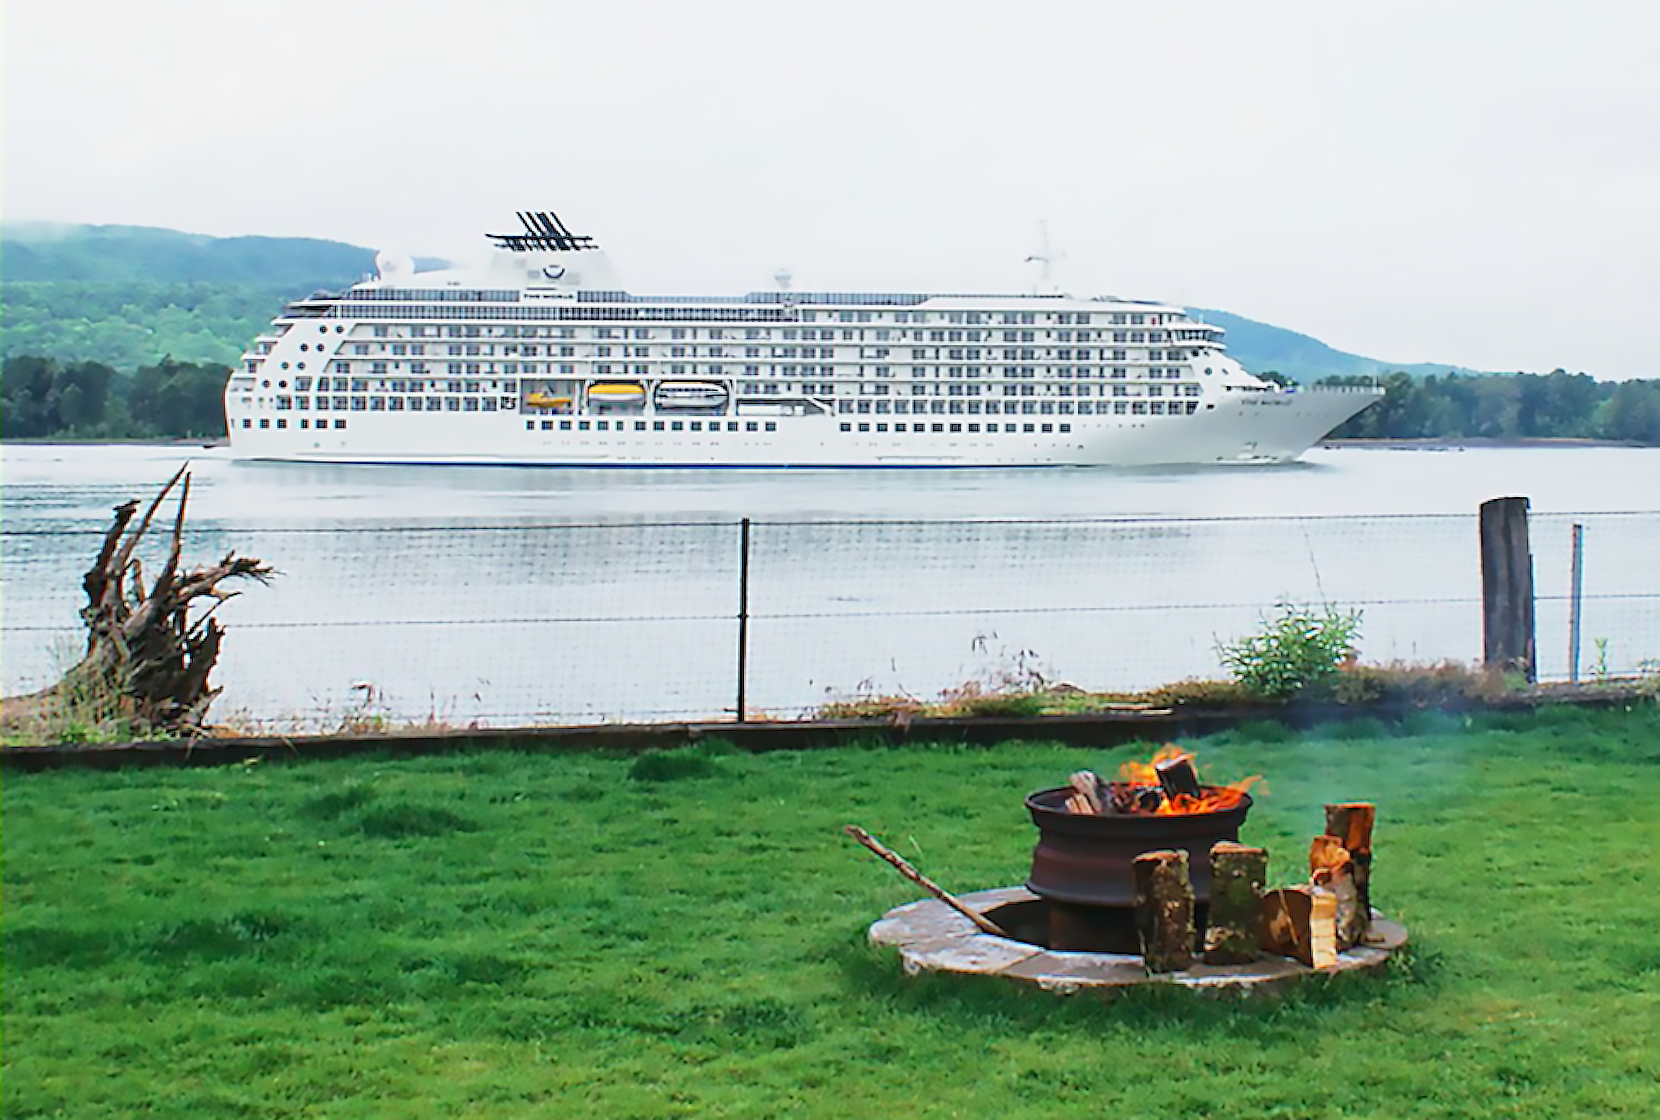 A white cruise ships sails on the Columbia River. Firepit in foreground.